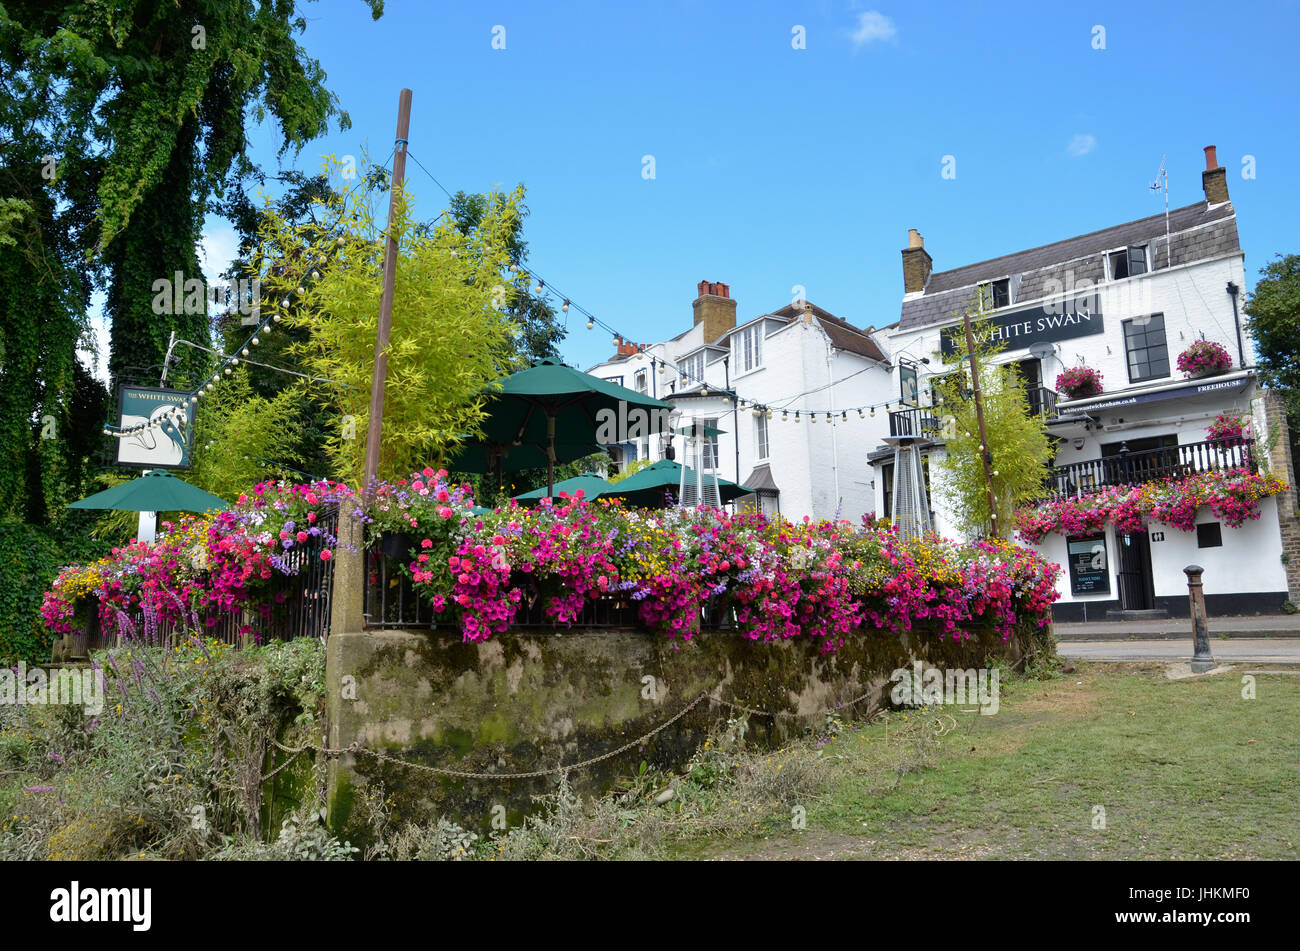 The White Swan public house on the River Thames in Twickenham, London - Stock Image